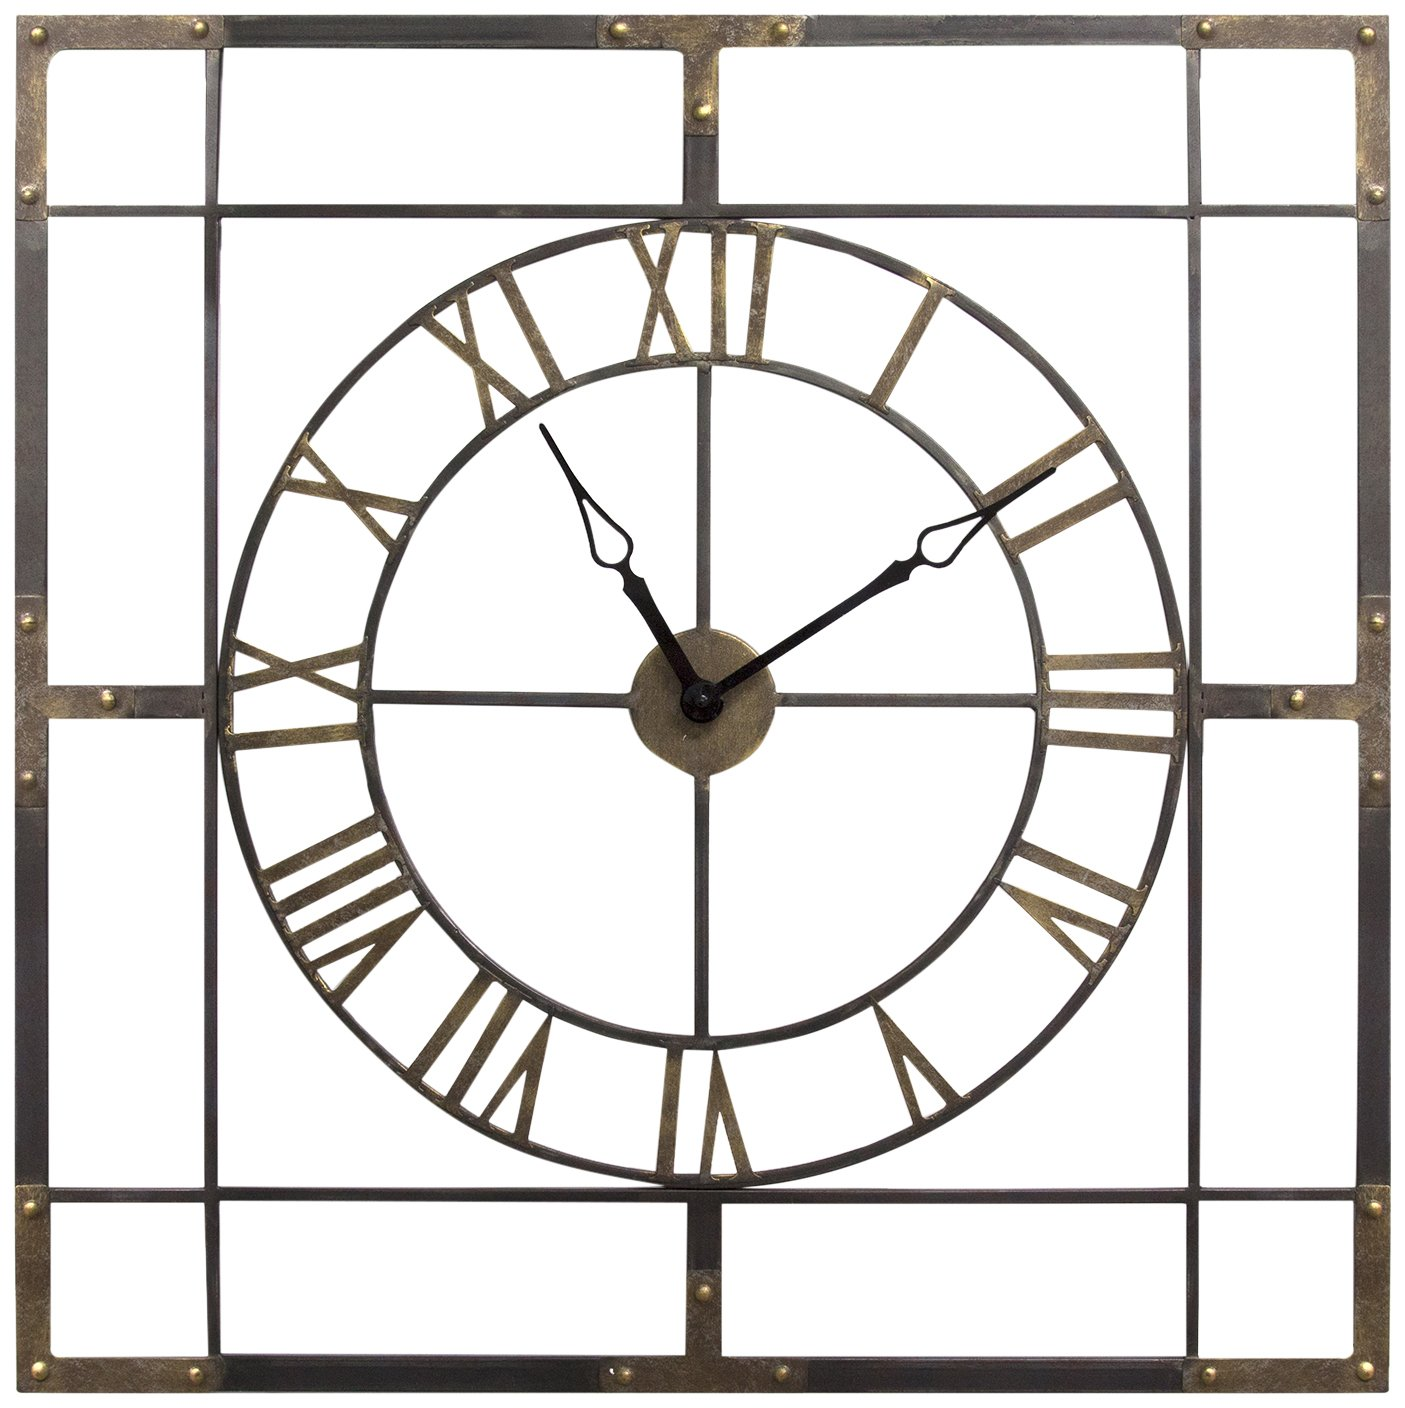 Stratton Home Décor S11549 Large Industrial Wall Clock, Antique Bronze